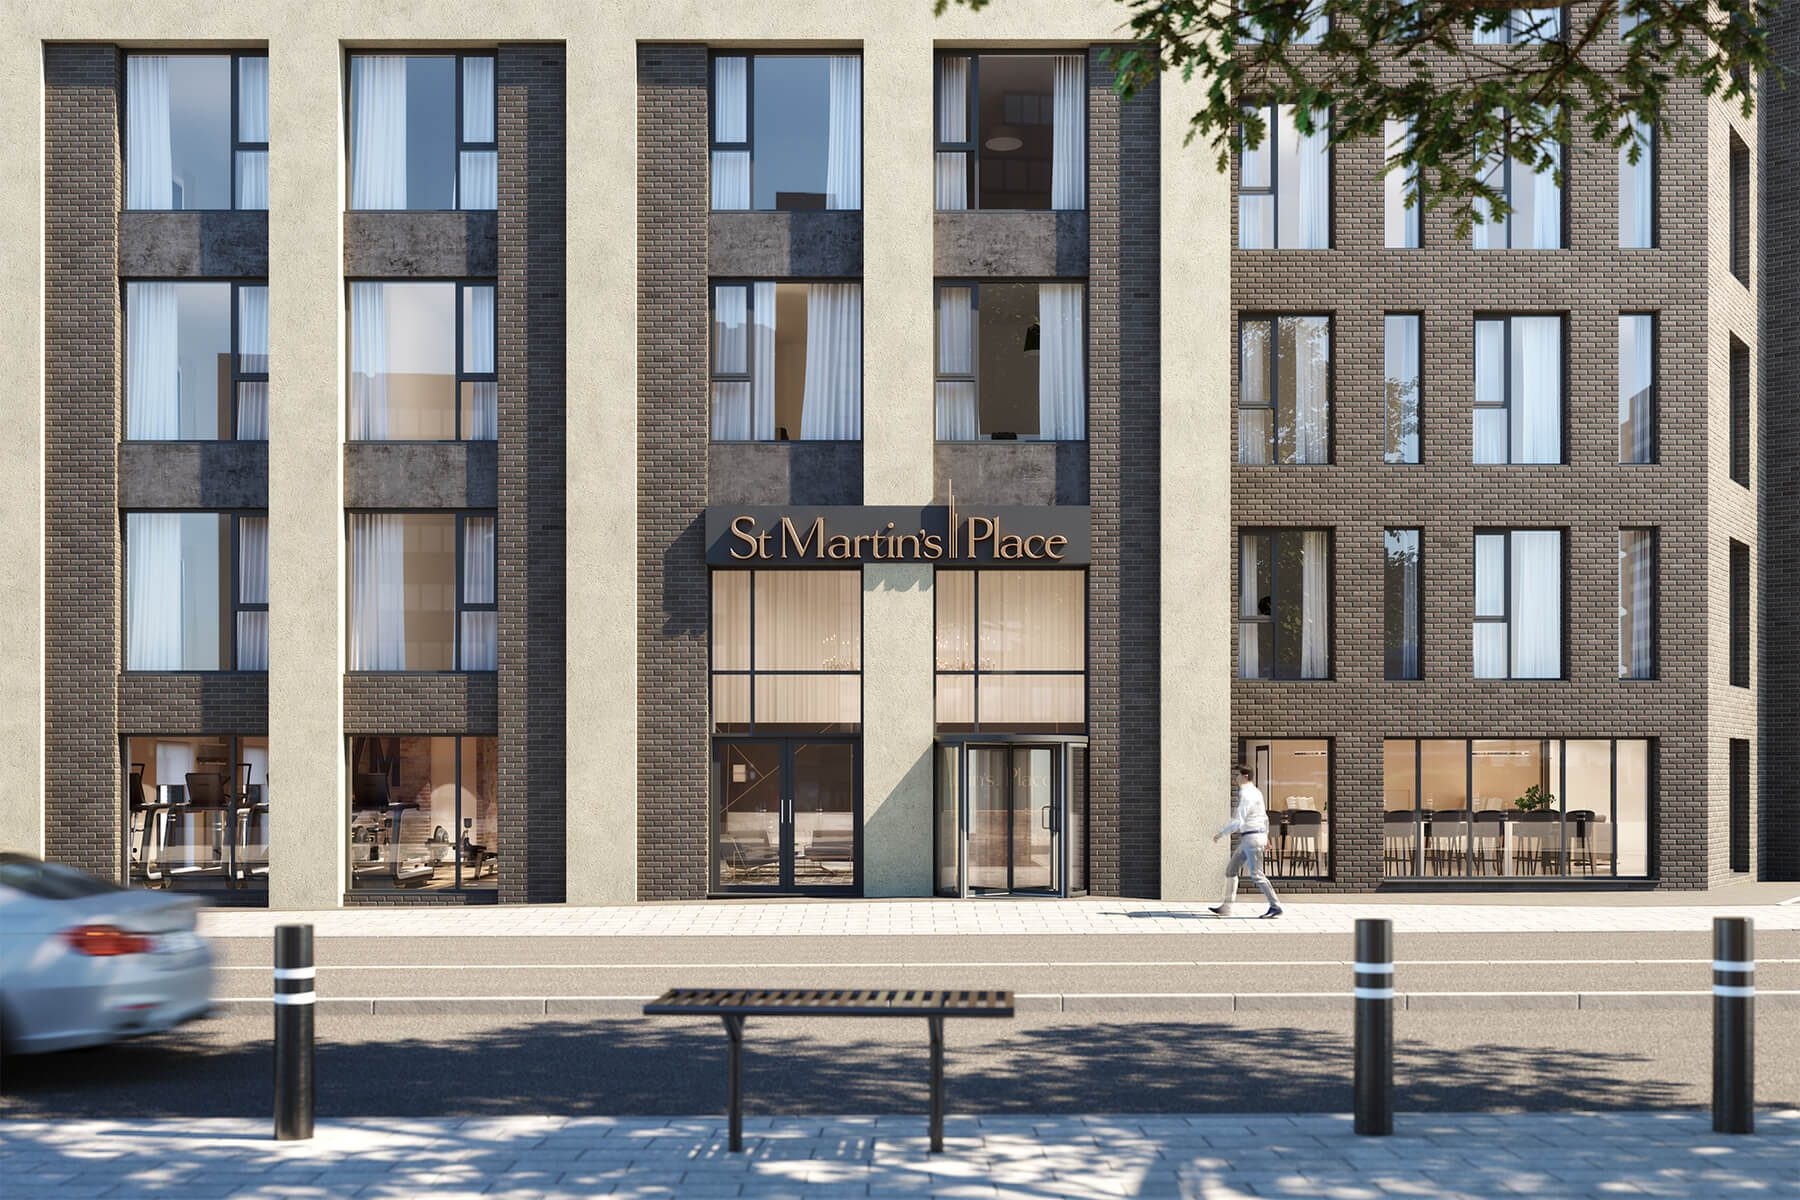 St Martin's Place - Birmingham's first hotel-serviced apartment development